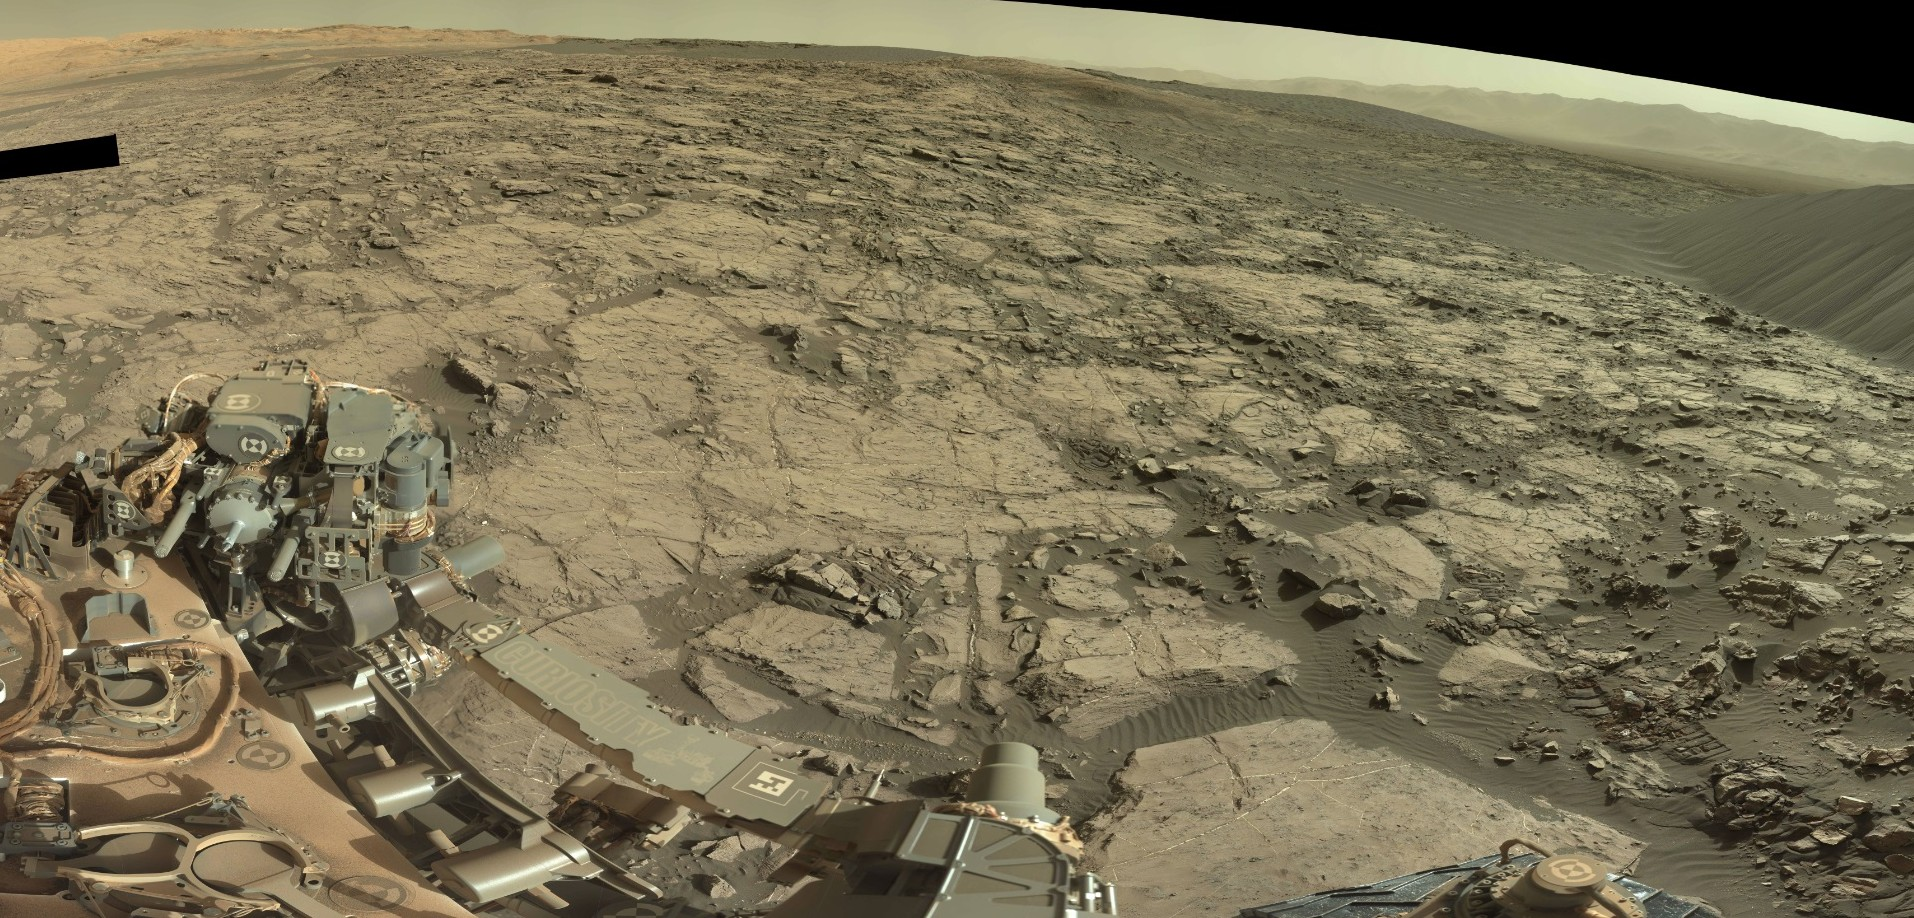 15 12 19 Mastcam 1197ML0054560000502947E01_DXXX_stitch rec